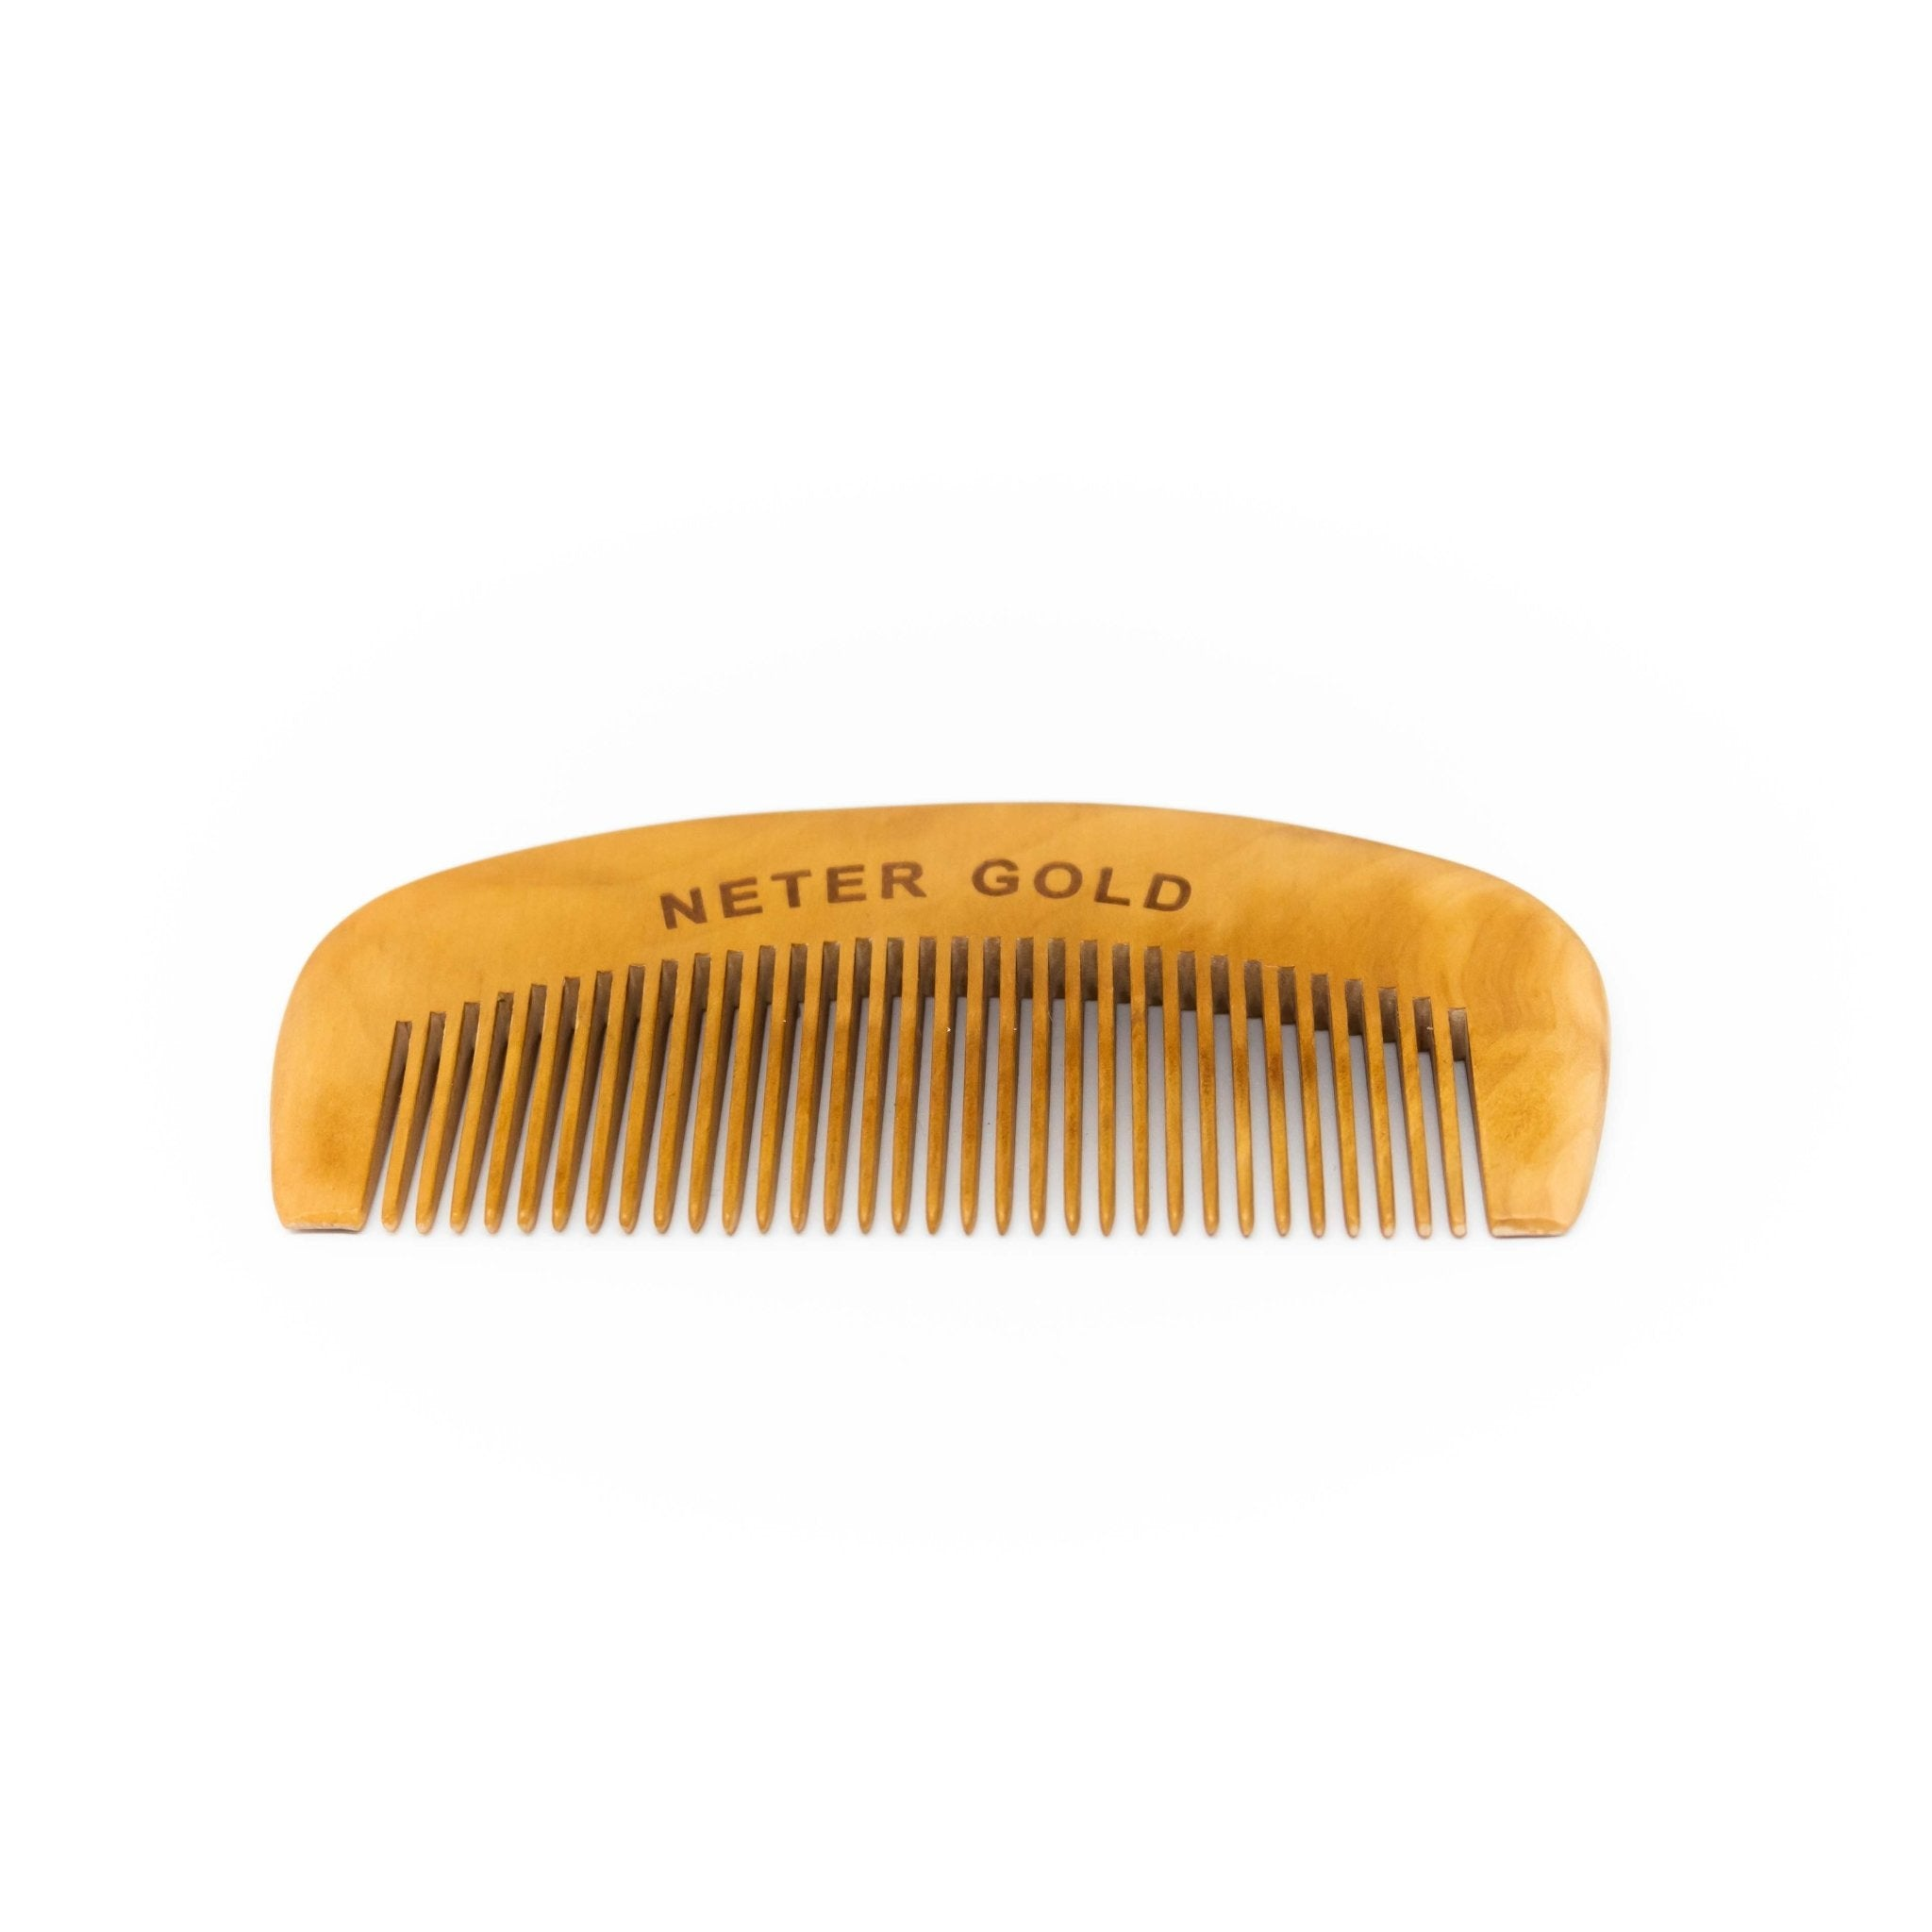 Detangling Beard Comb - Neter Gold - NTRGLD - NETER GOLD - All natural body care products designed to increase your natural godly glow. - hair growth - eczema - dry skin